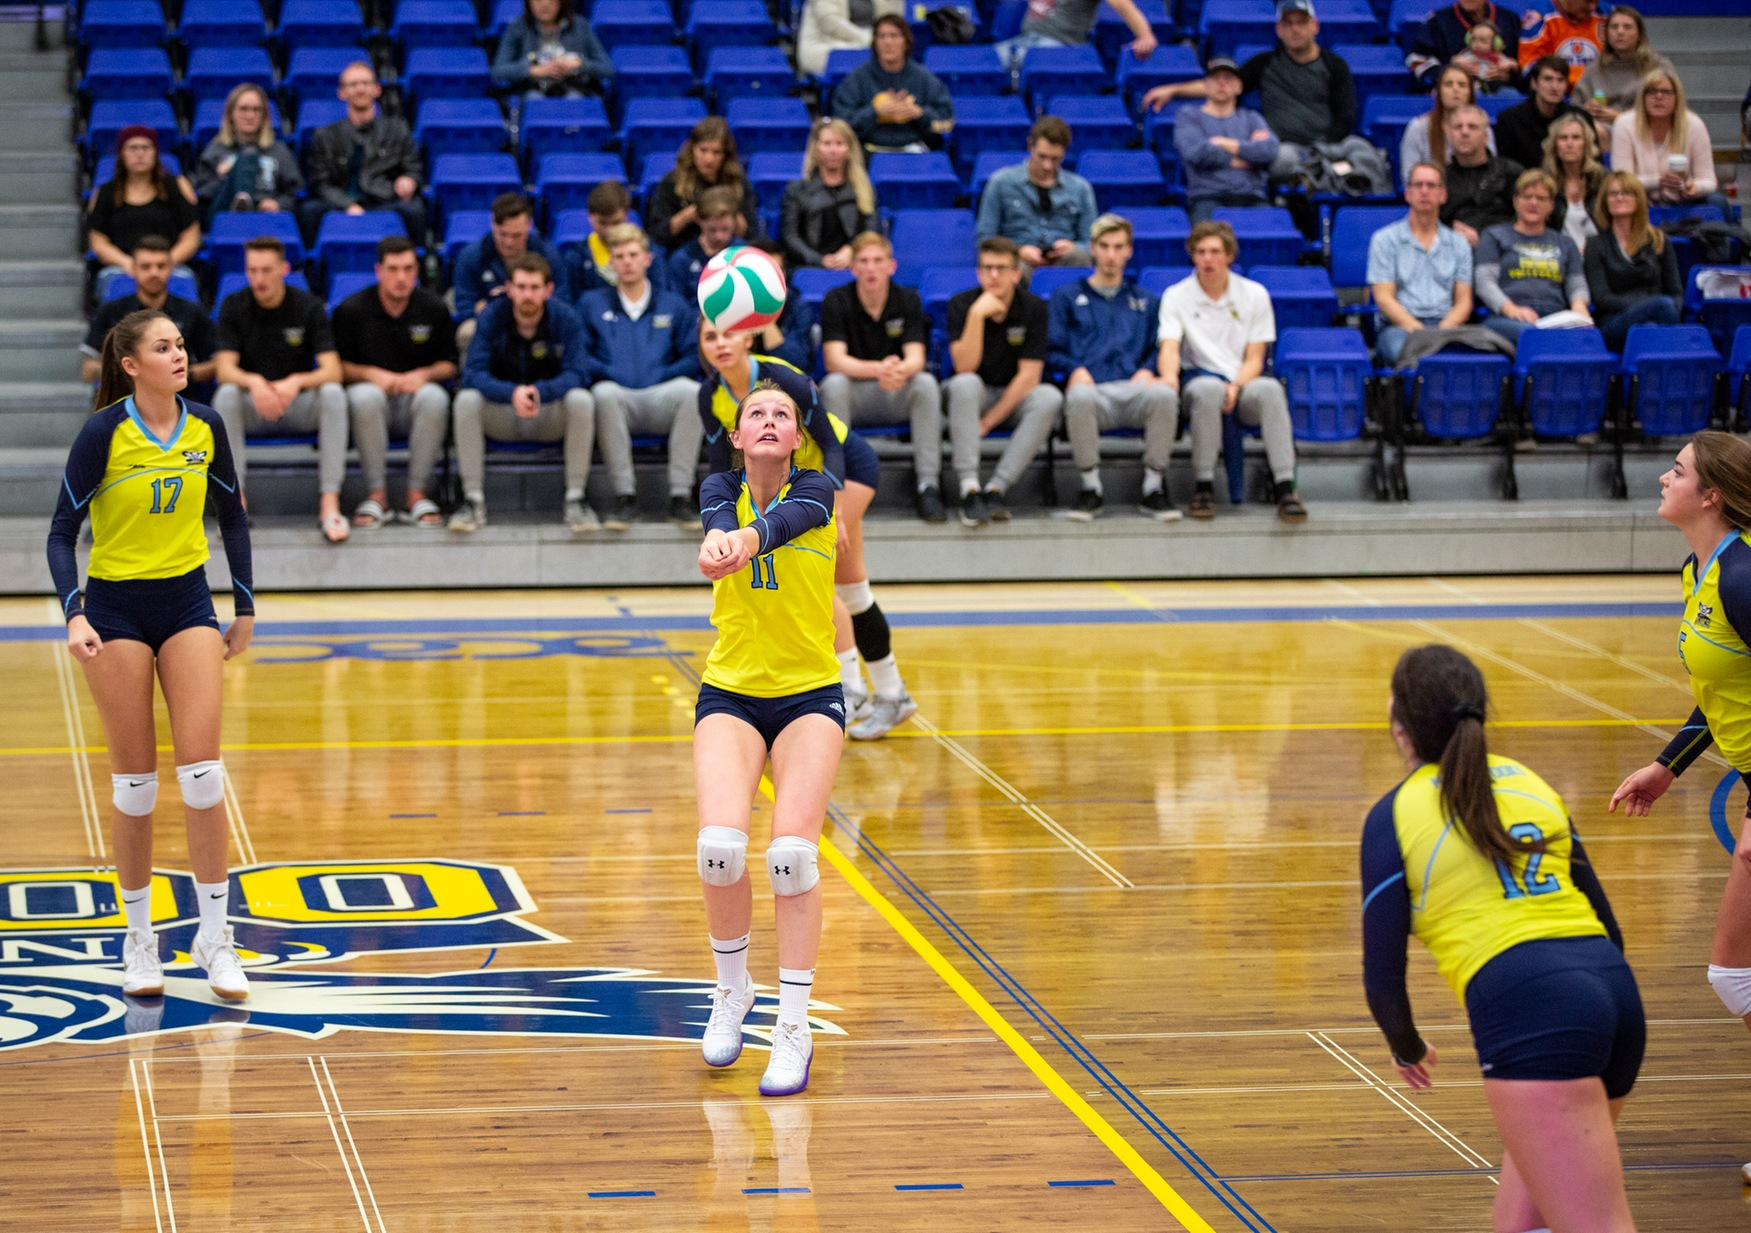 Ooks WVB lose to Wolves 3-1